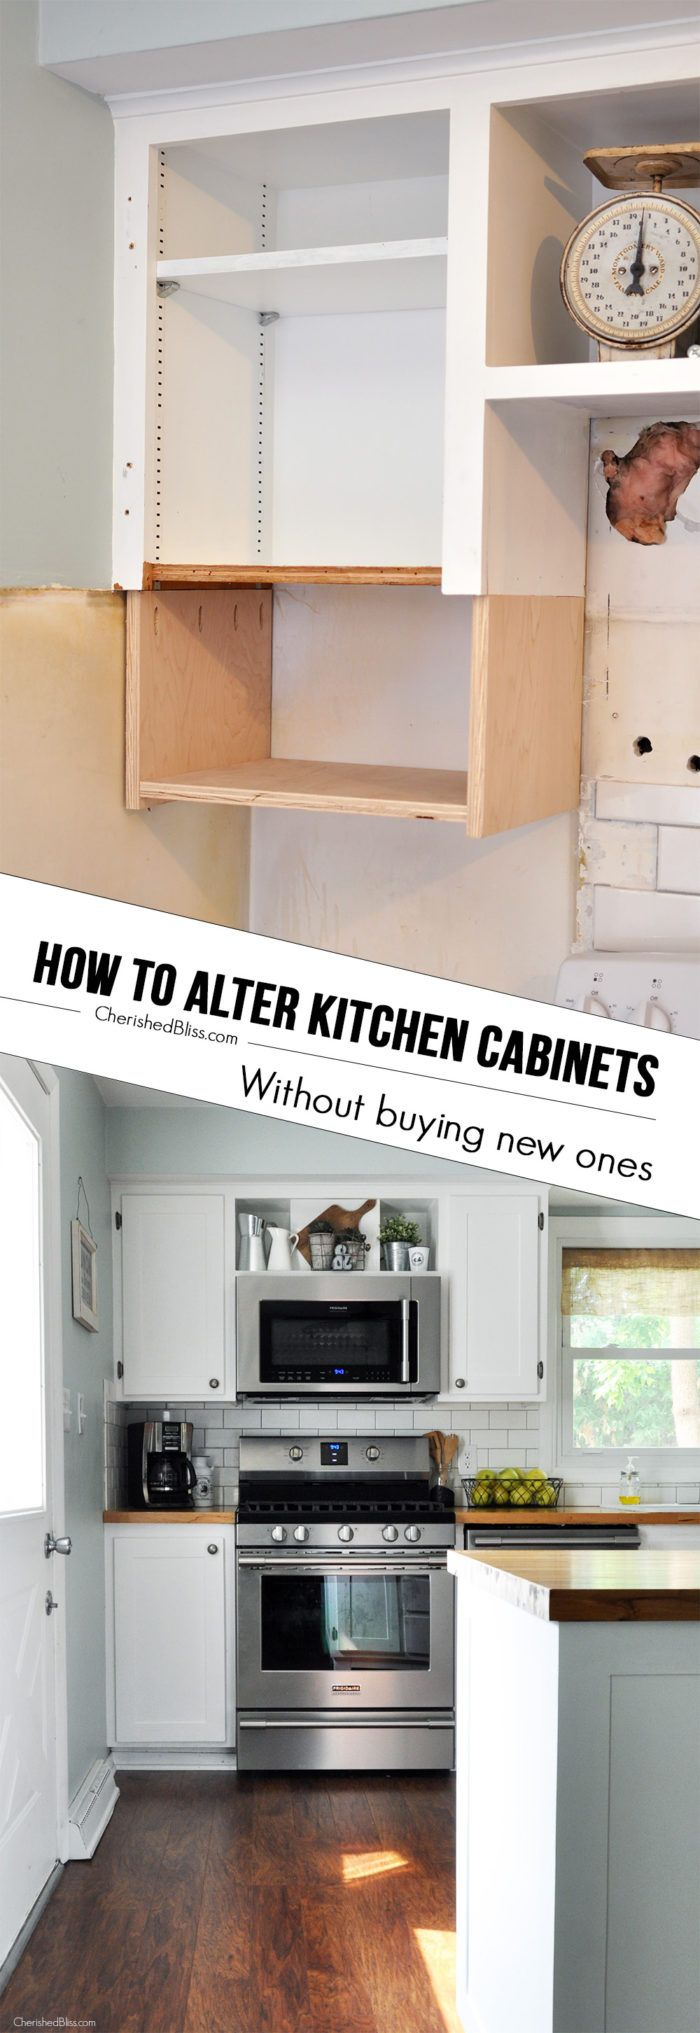 How to Alter Kitchen Cabinets | Diy kitchen cabinets, Diy ...